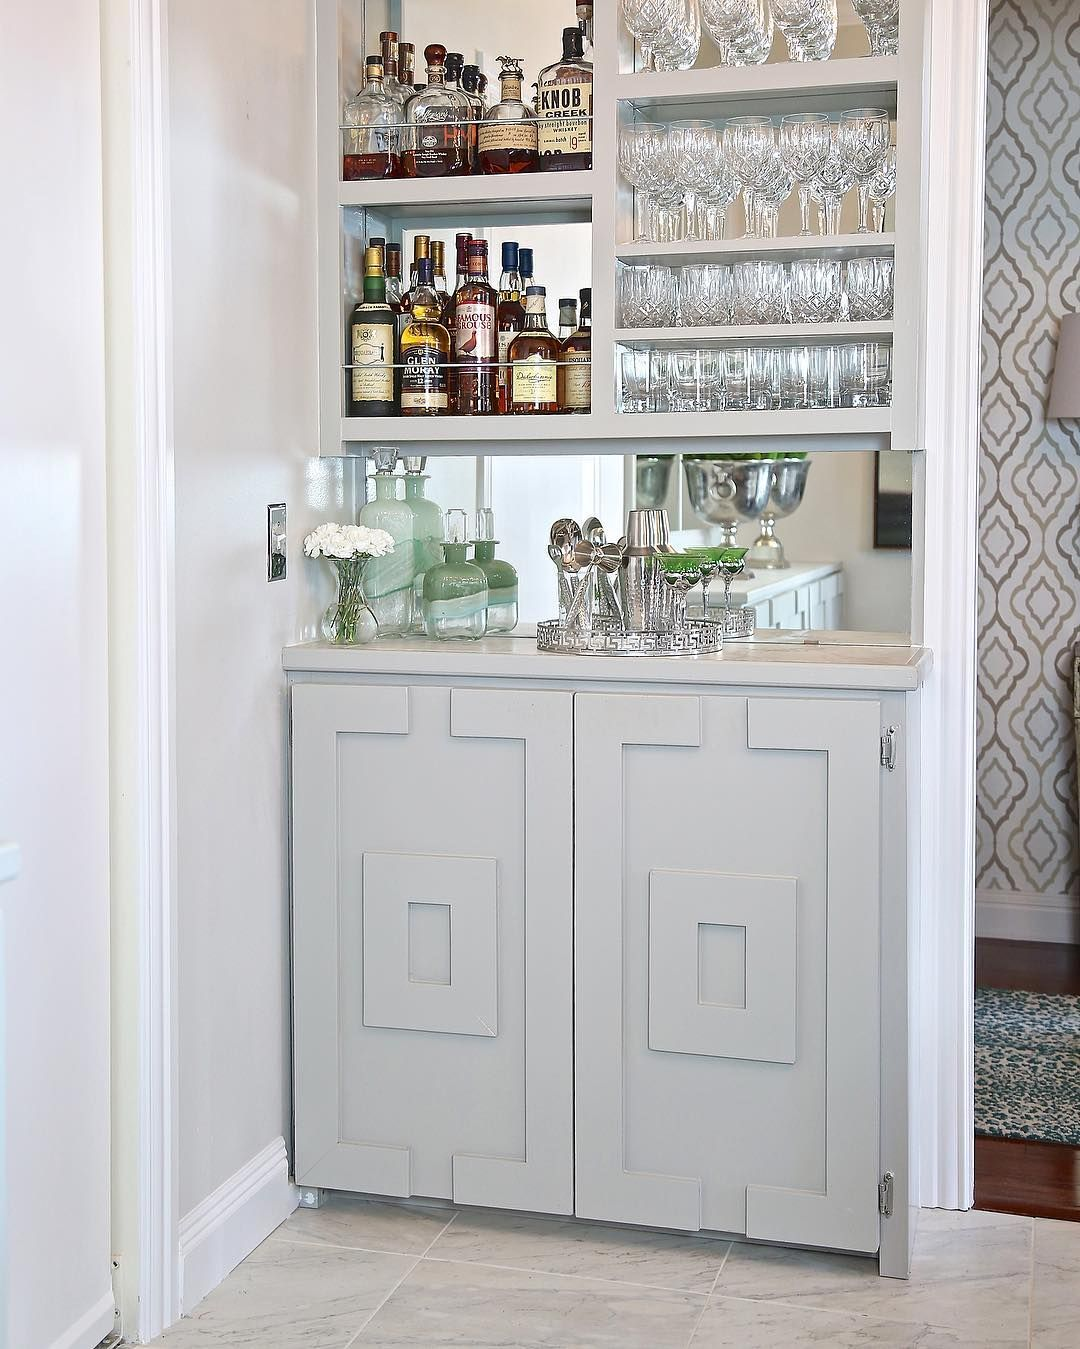 Get Creative With These Corner Kitchen Cabinet Ideas: Even In The Narrowest Spaces, There's Always A Way To Get